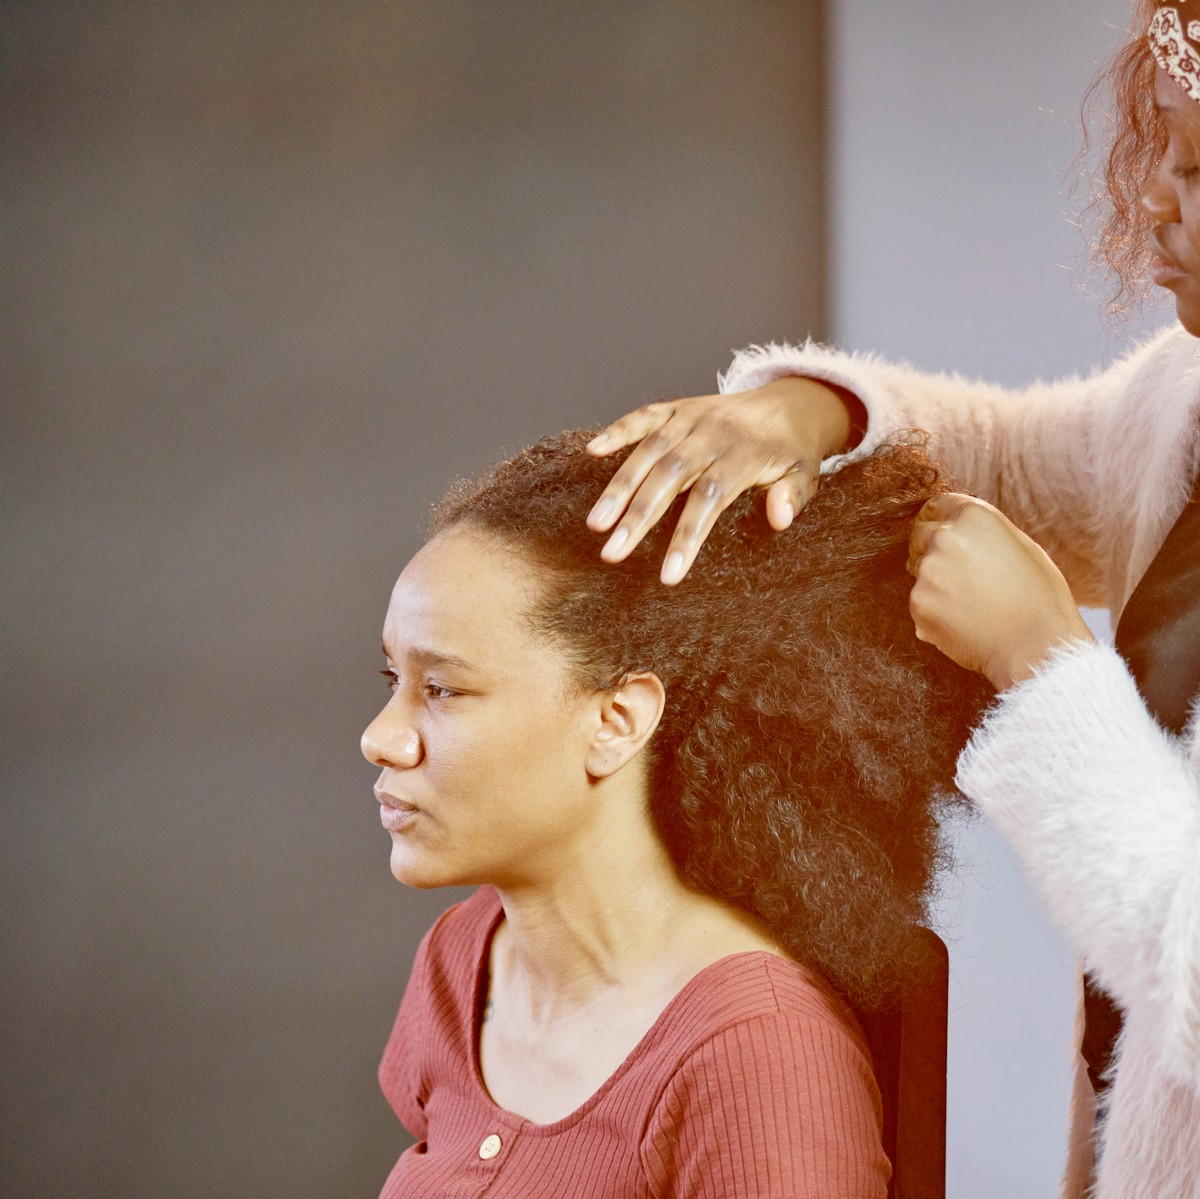 Is It Really True That Hair Dye and Relaxer Cause Cancer?